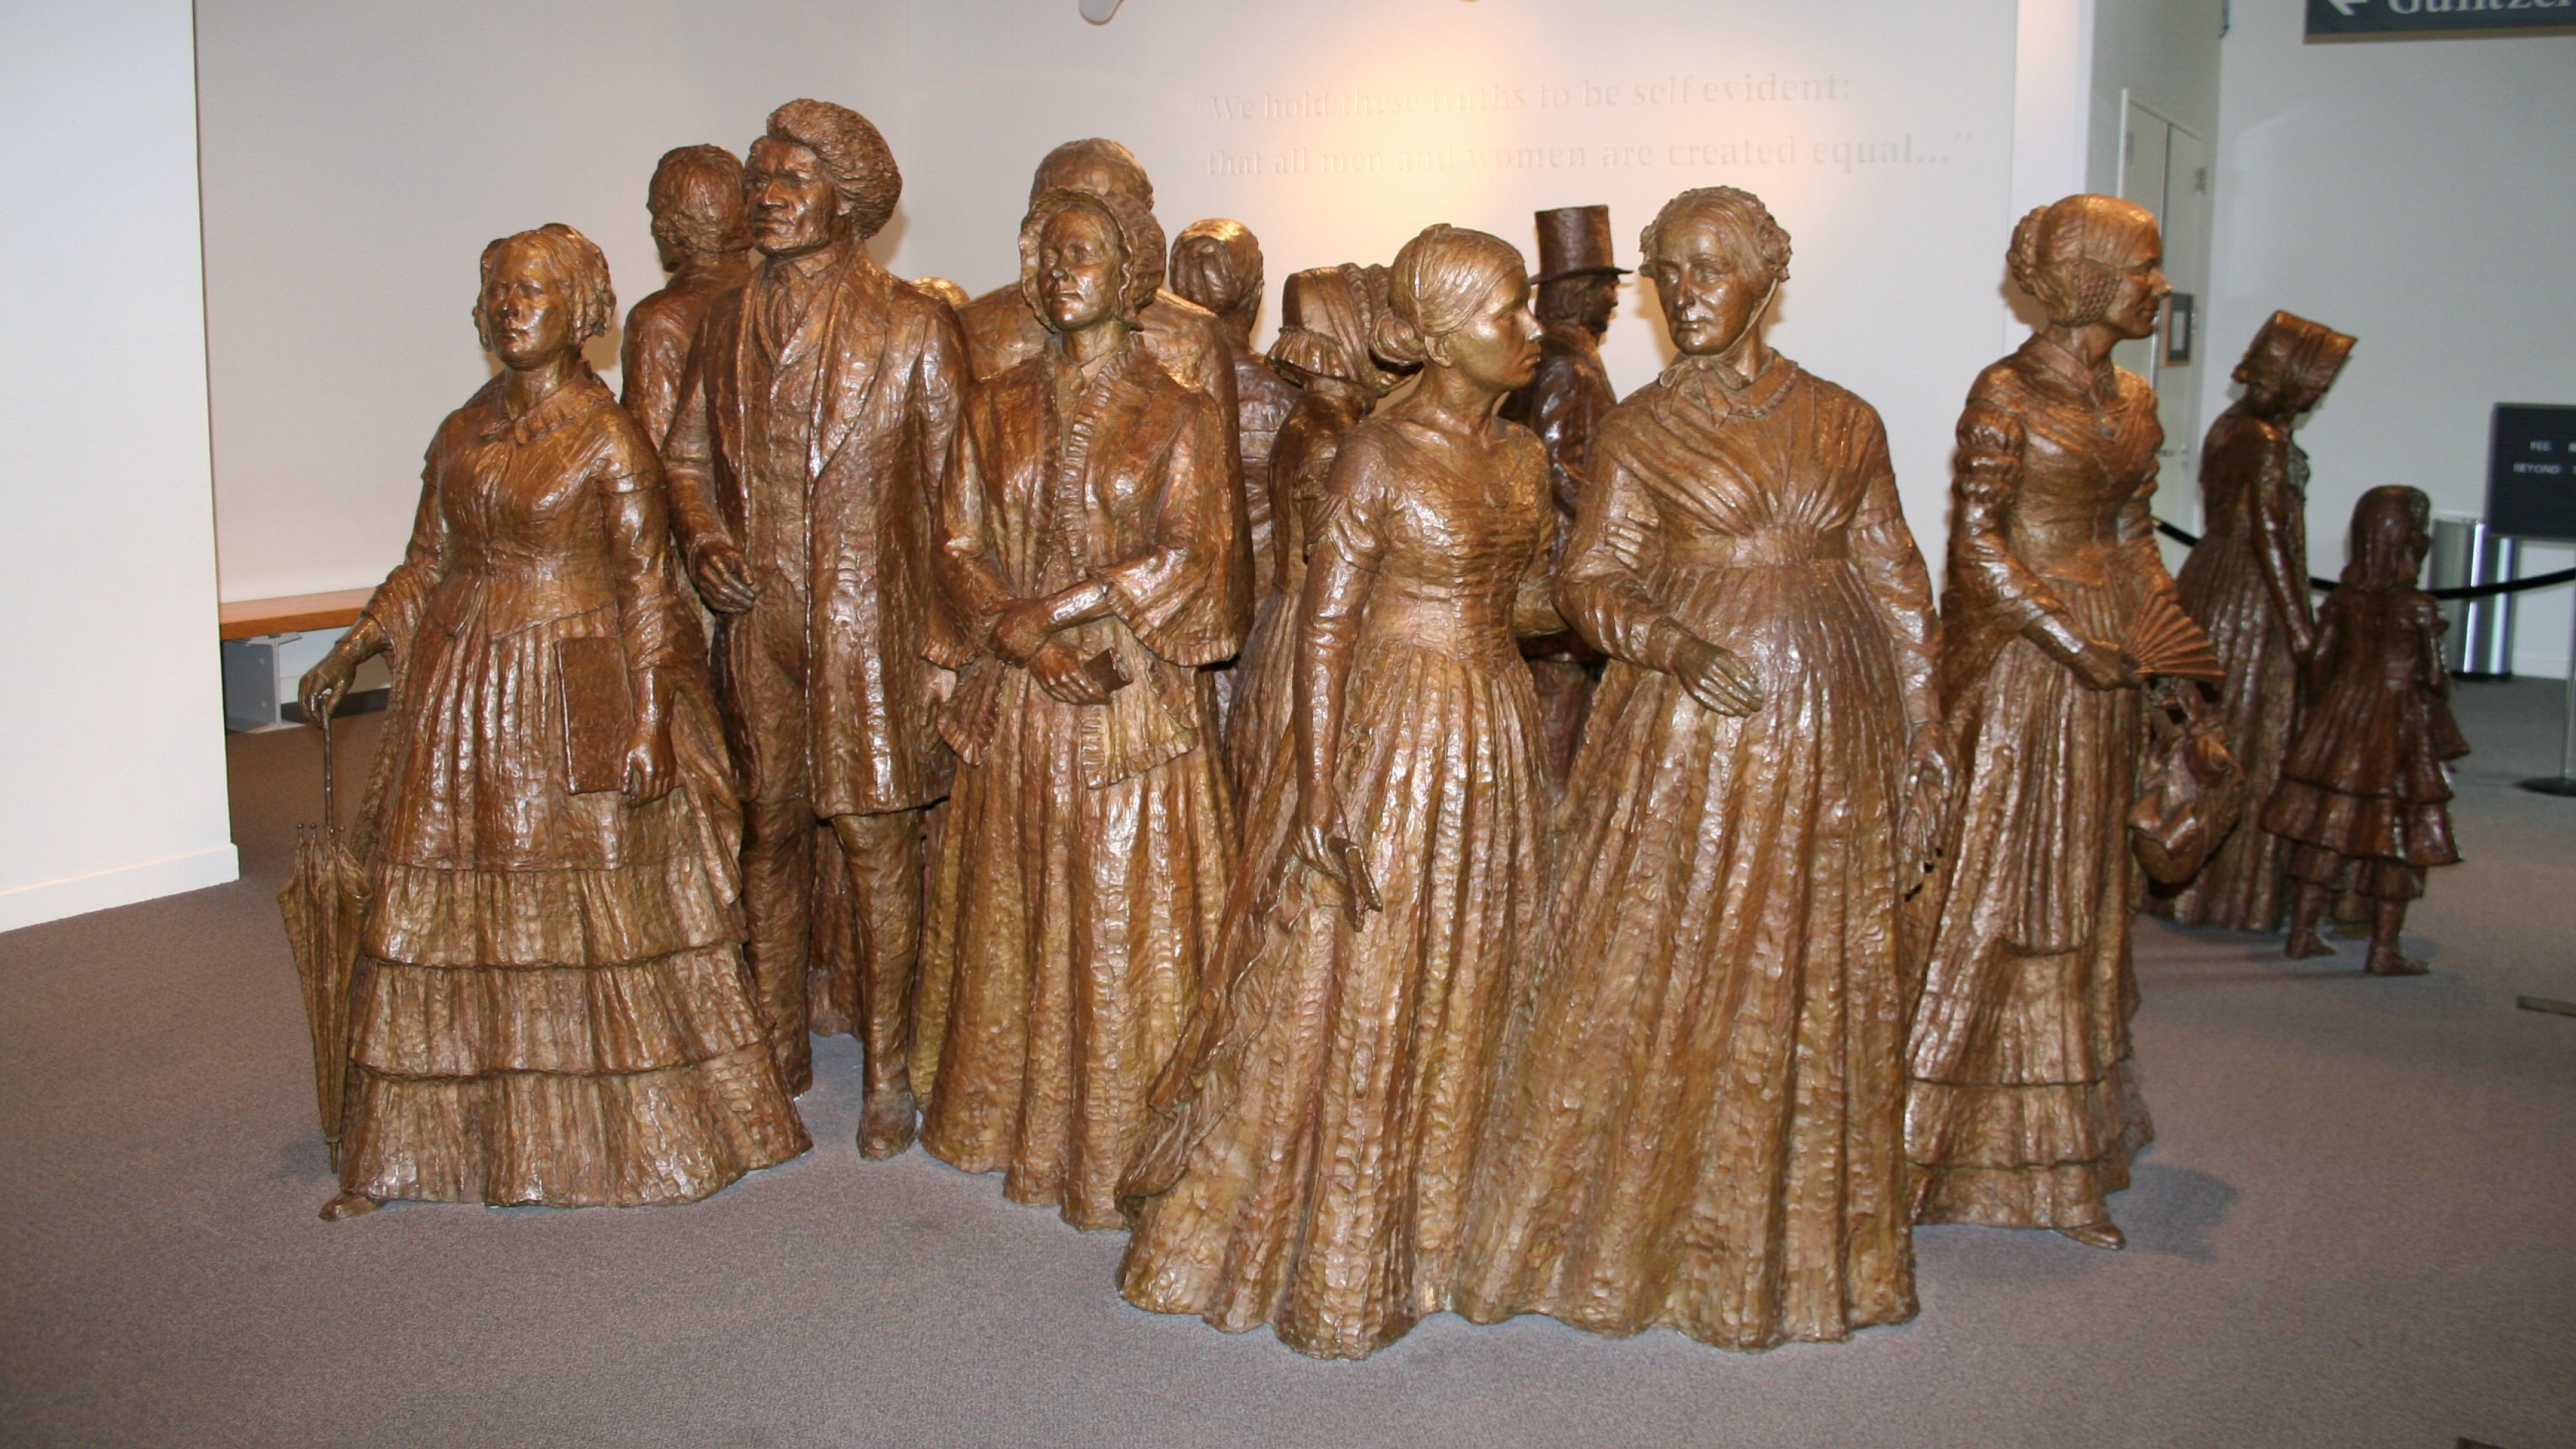 Bronze statues of the First Wave at Women's Rights National Historical Park in New York